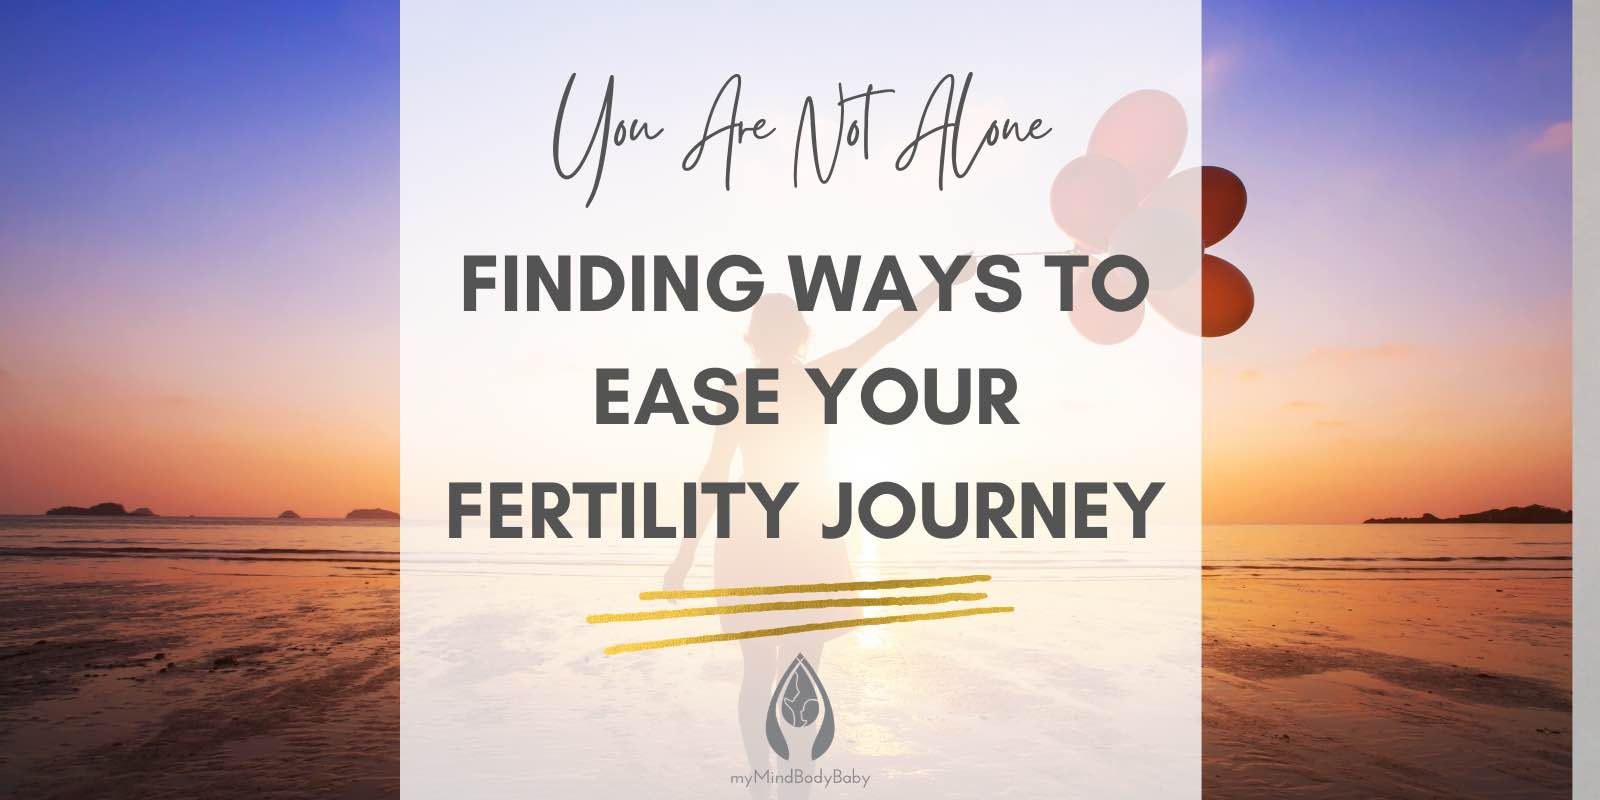 Finding Ways to Ease Your Fertility Journey